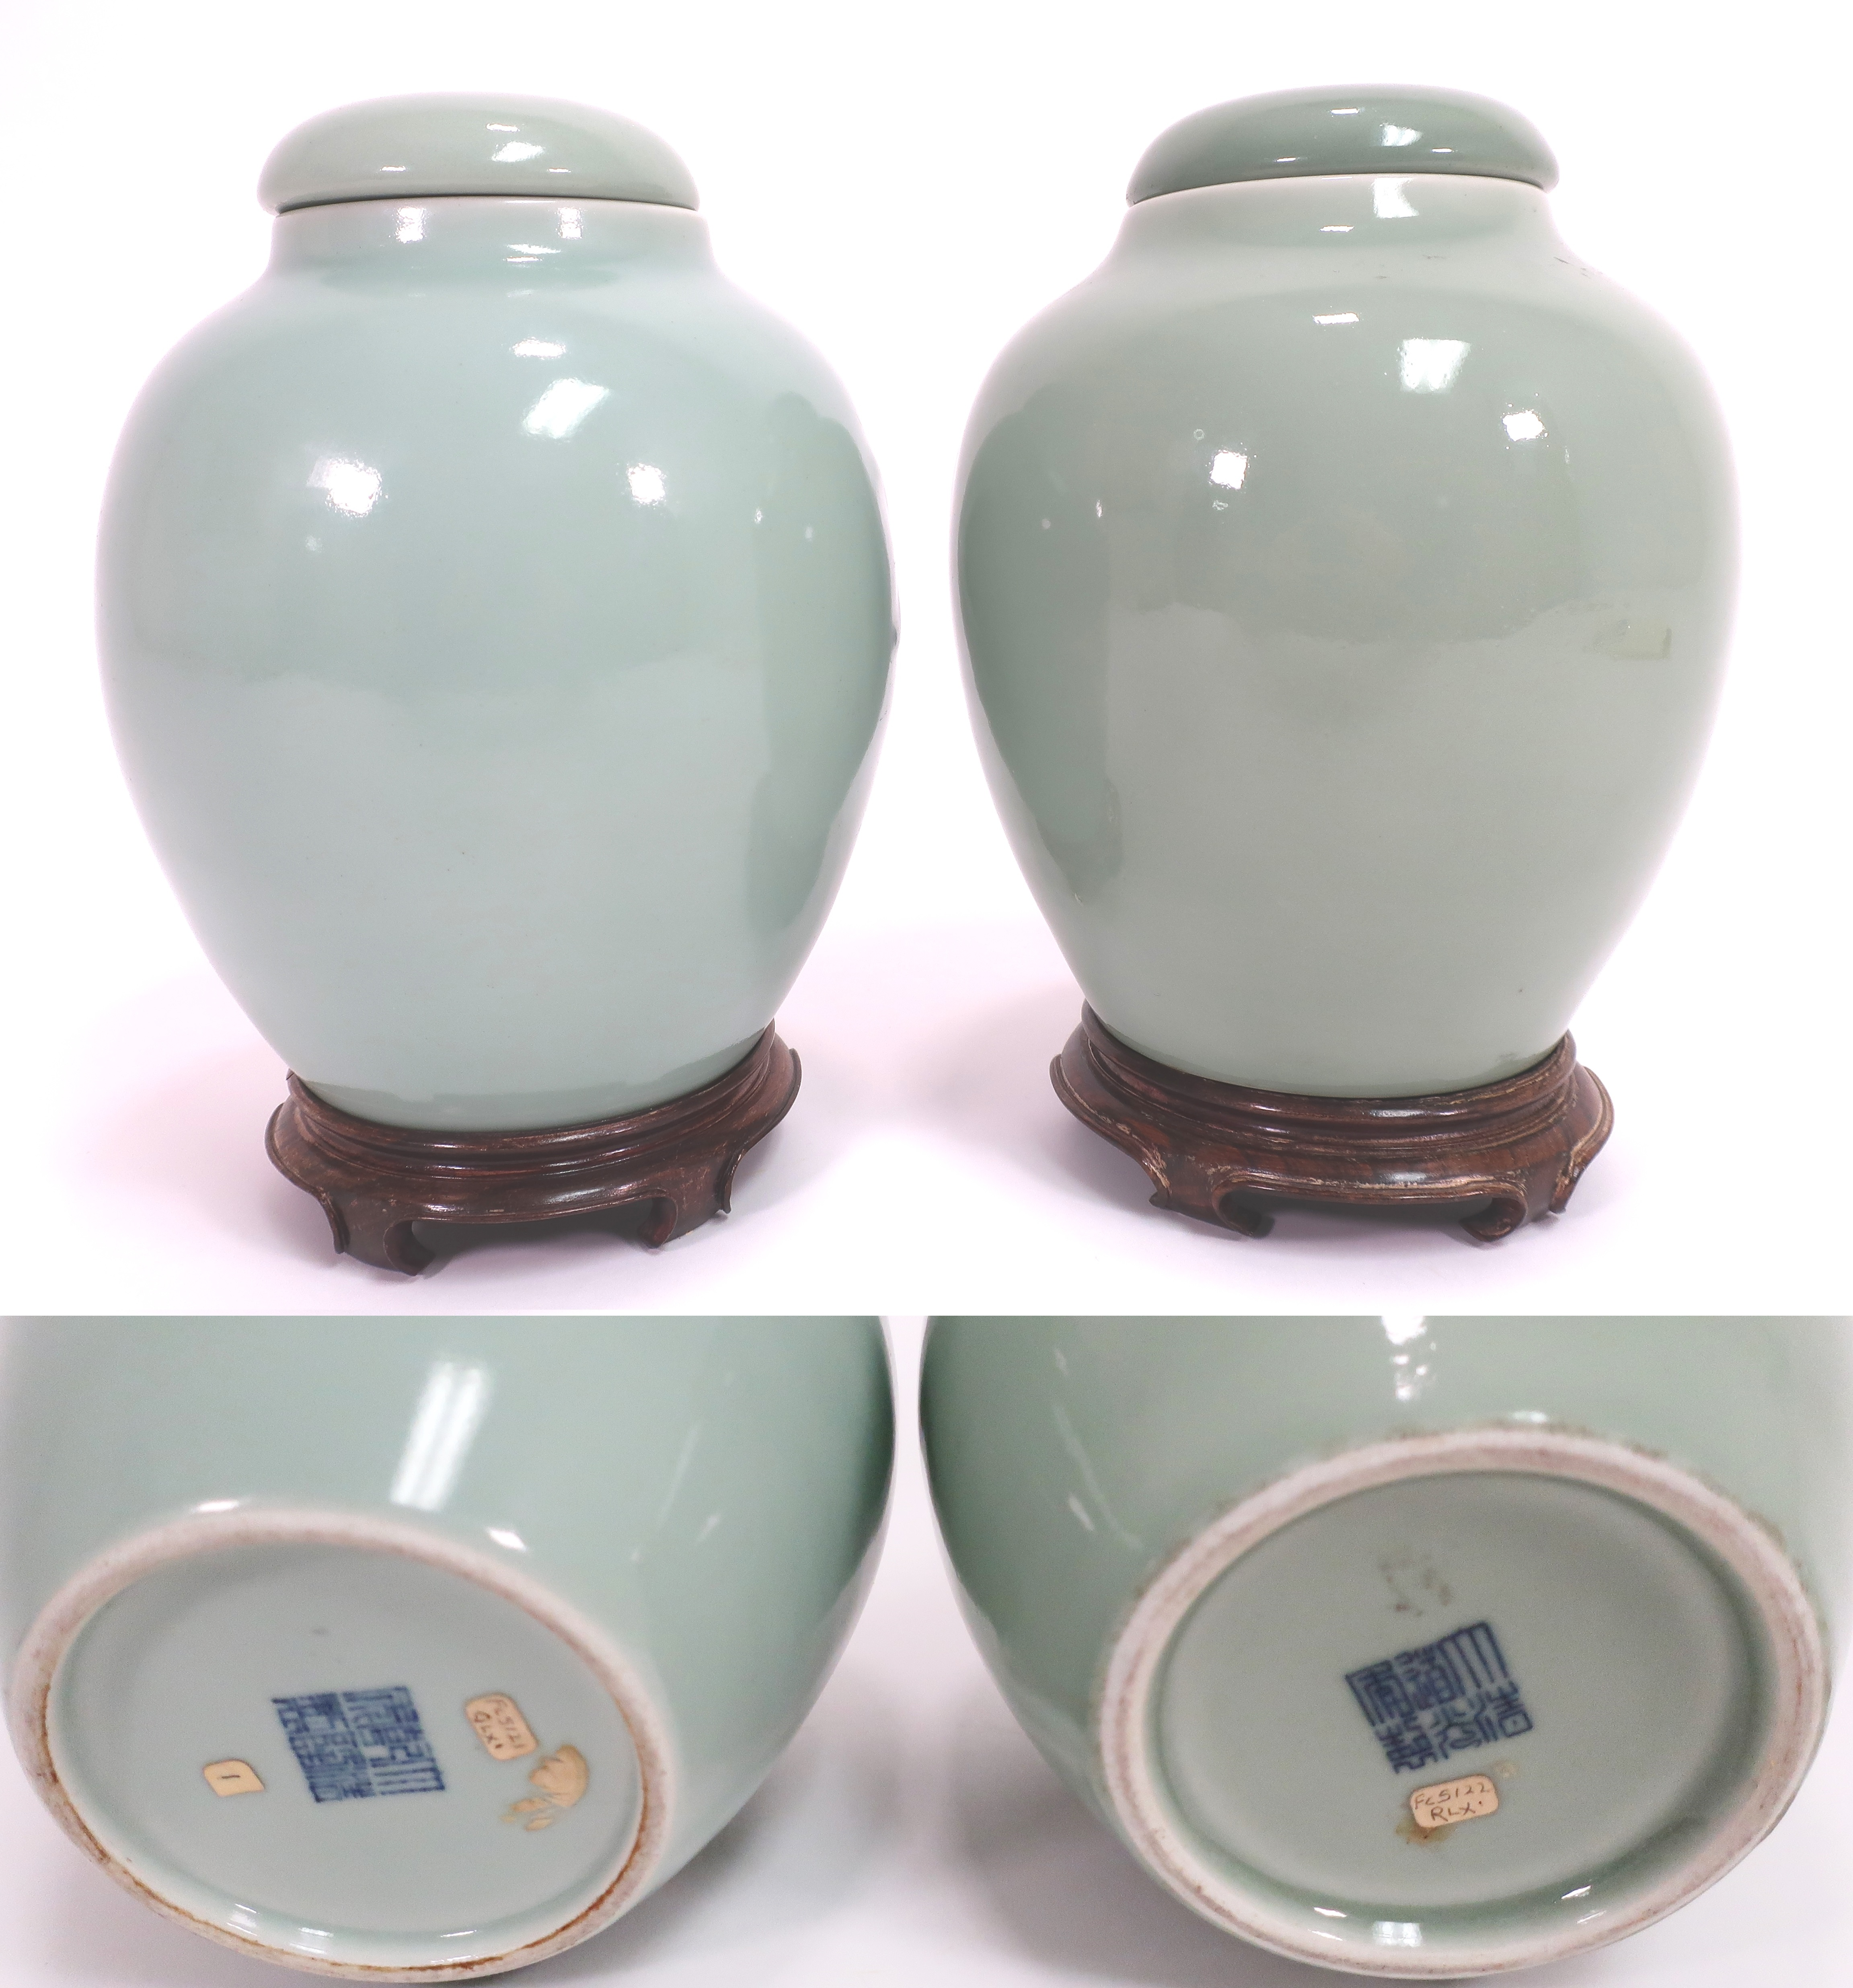 Near Pair Of Chinese Porcelain Covered Jars With Marks. Sold For $40,000